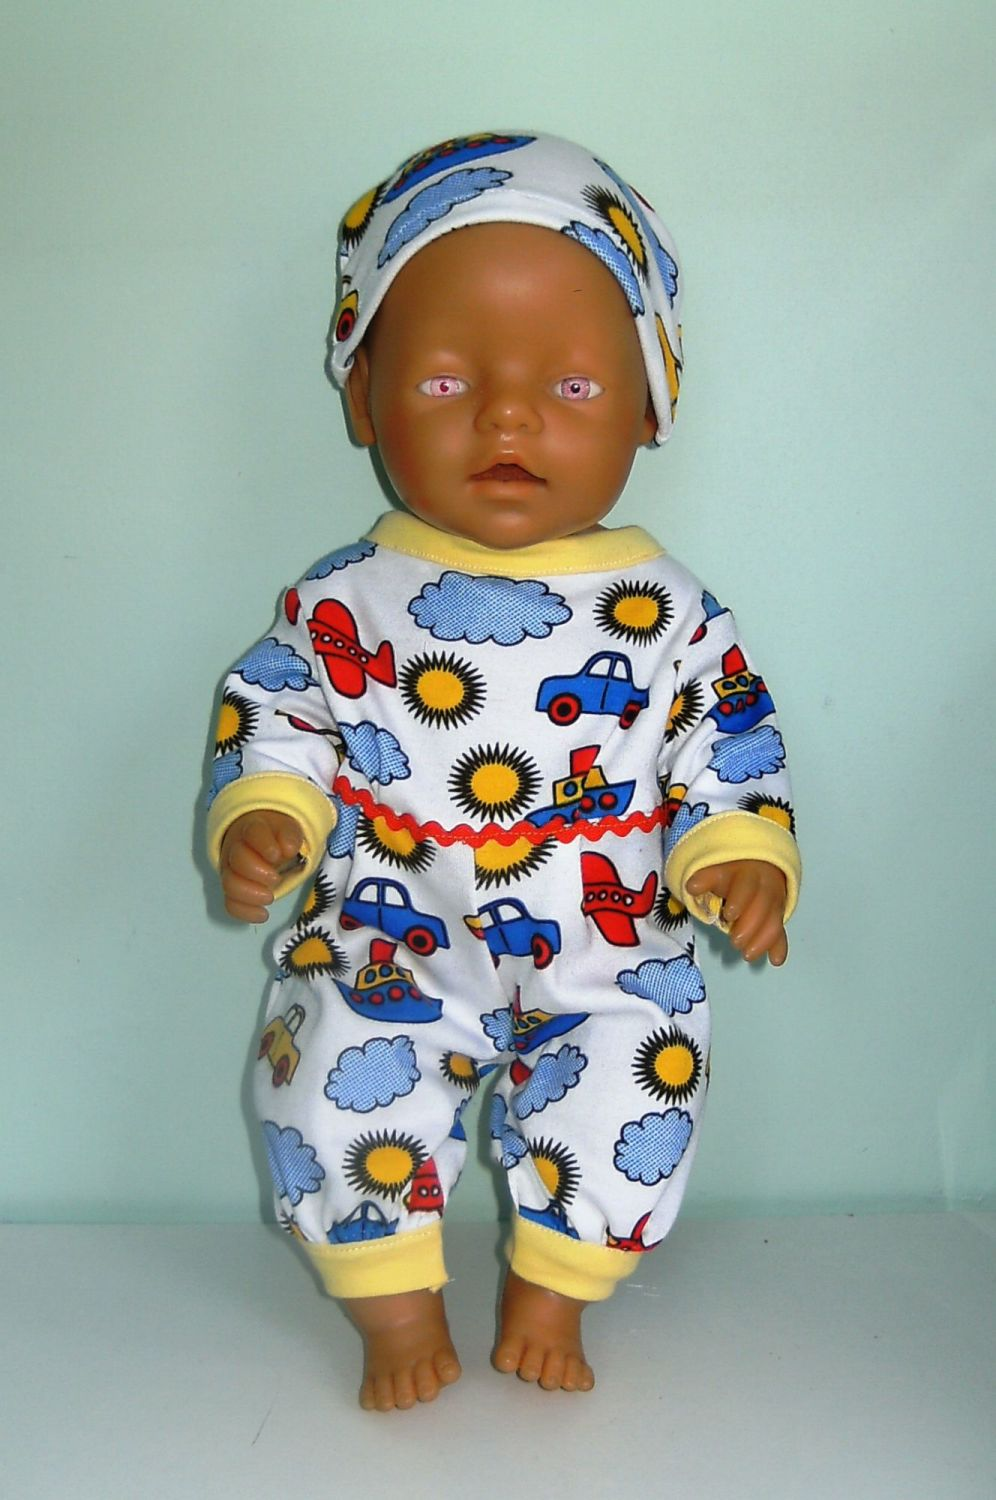 Doll's sleepsuit/playsuit made to fit a 16 inch high baby doll